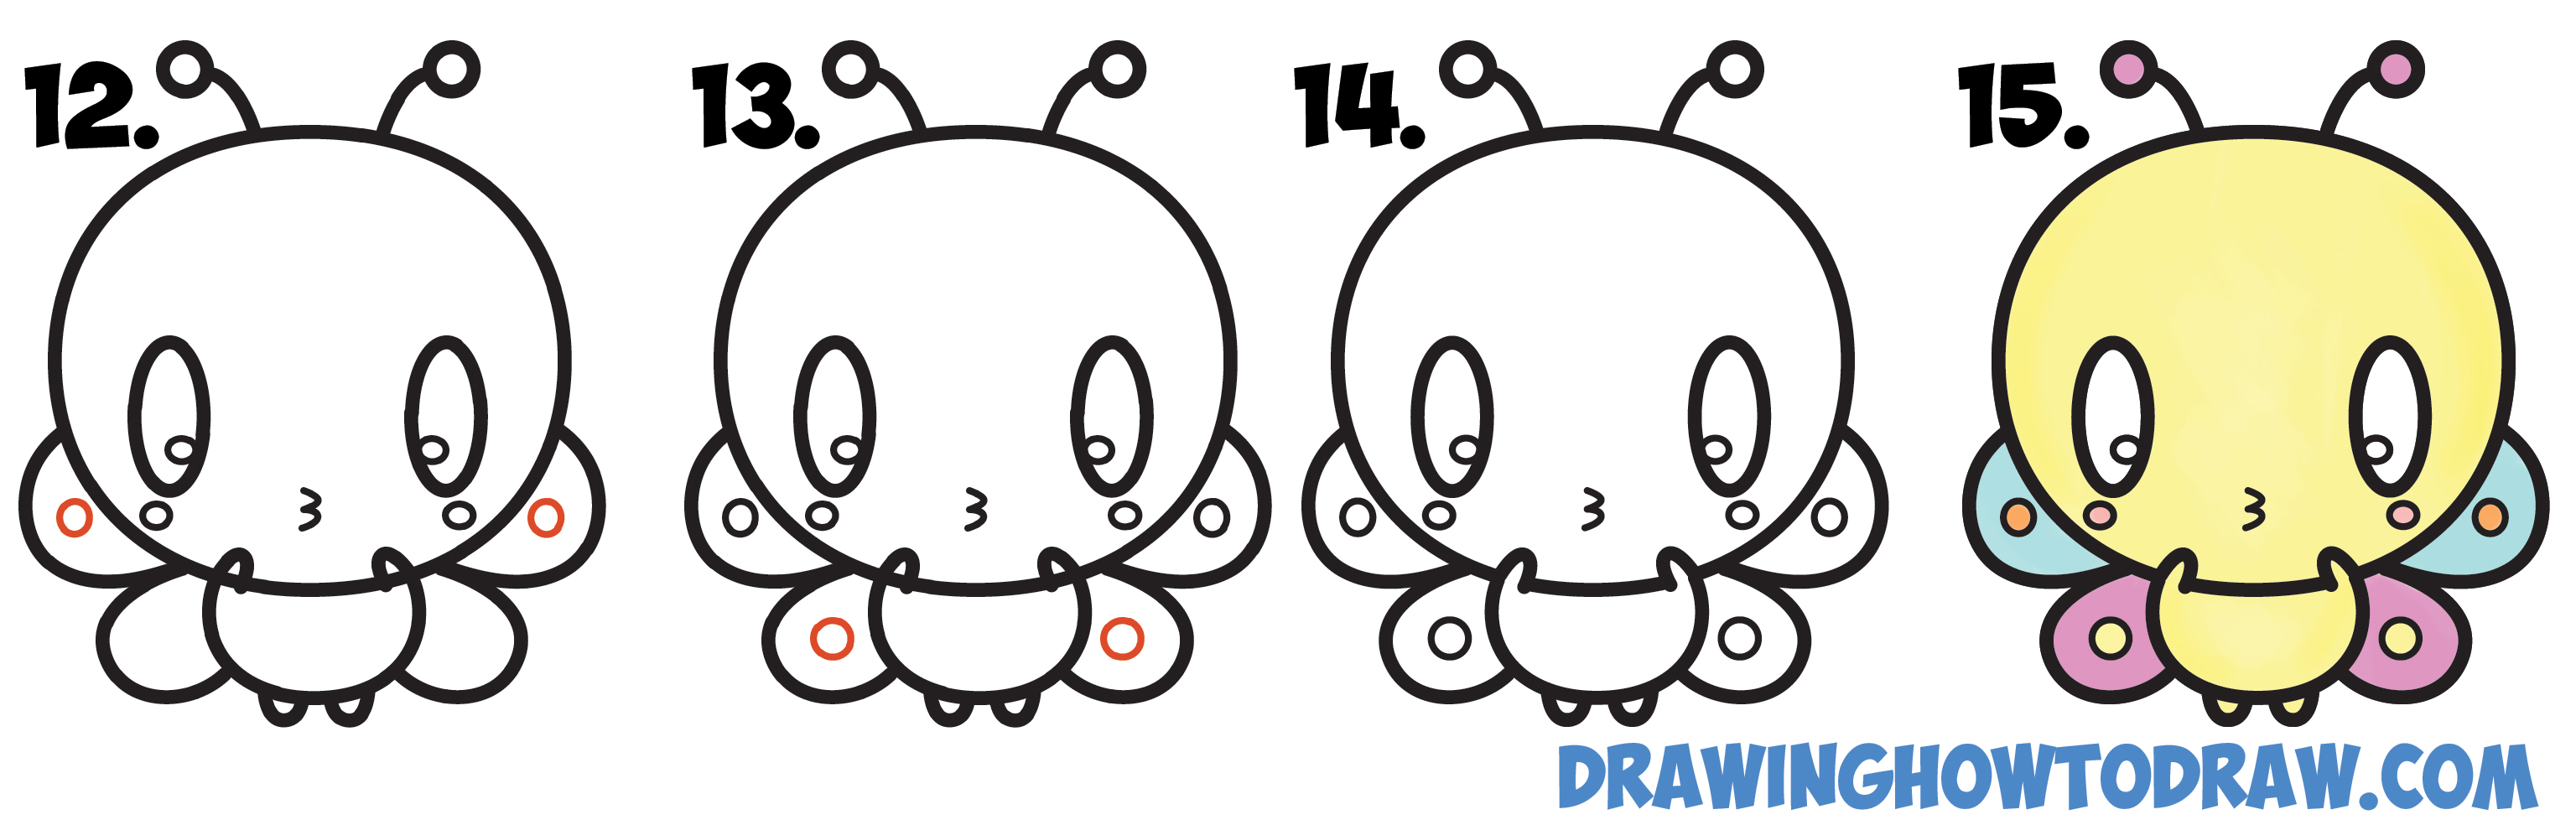 Learn How to Draw Cute Kawaii Cartoon Butterfly Simple Steps Drawing Lesson for Children & Beginners